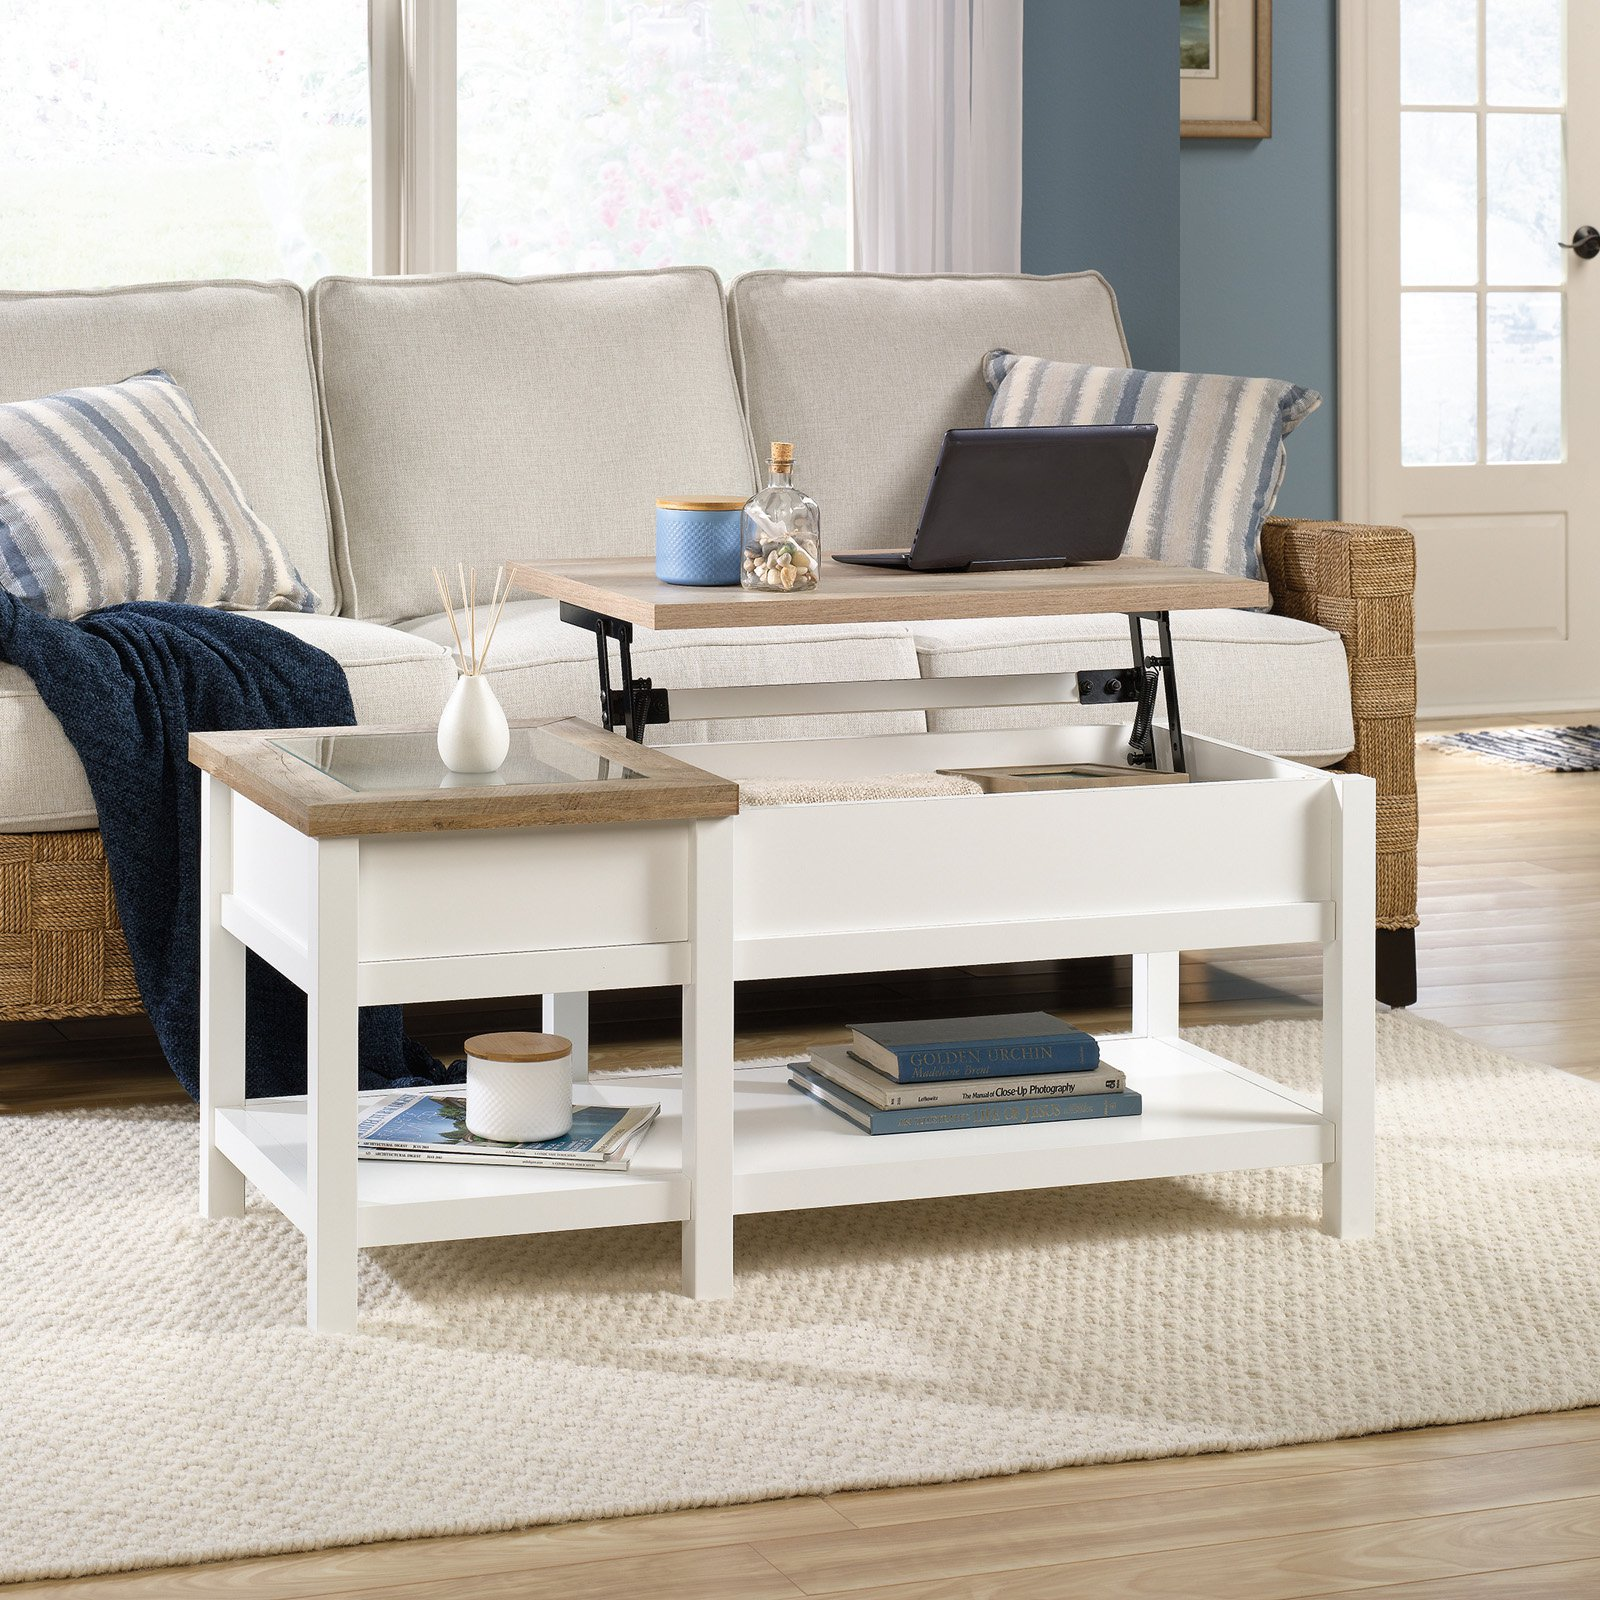 Charmant Sauder Cottage Road Lift Top Coffee Table, Soft White Finish   Walmart.com